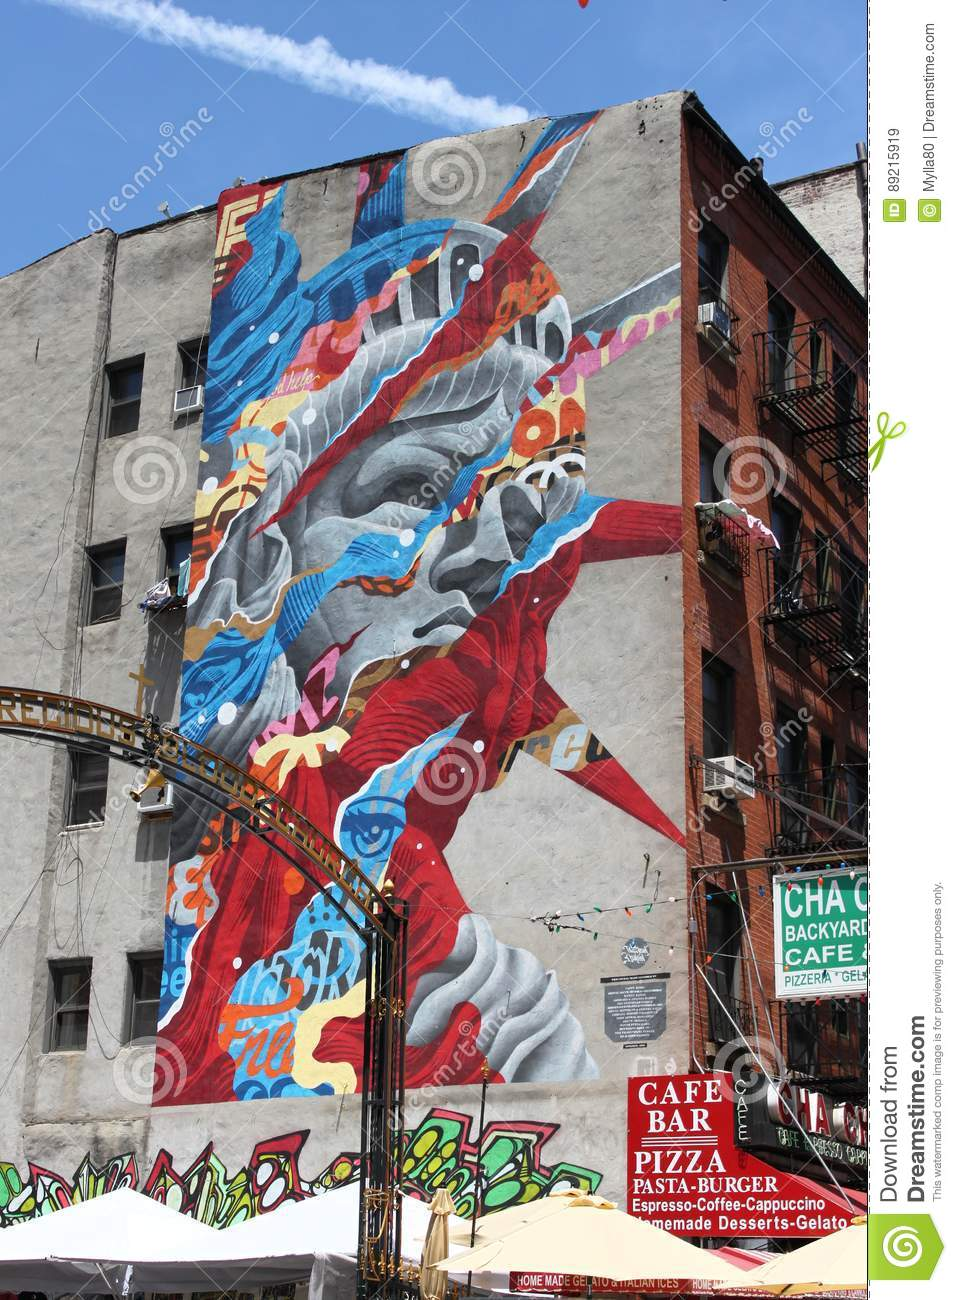 Foto Murales New York.Statue Of Liberty Murales In Little Italy New York City